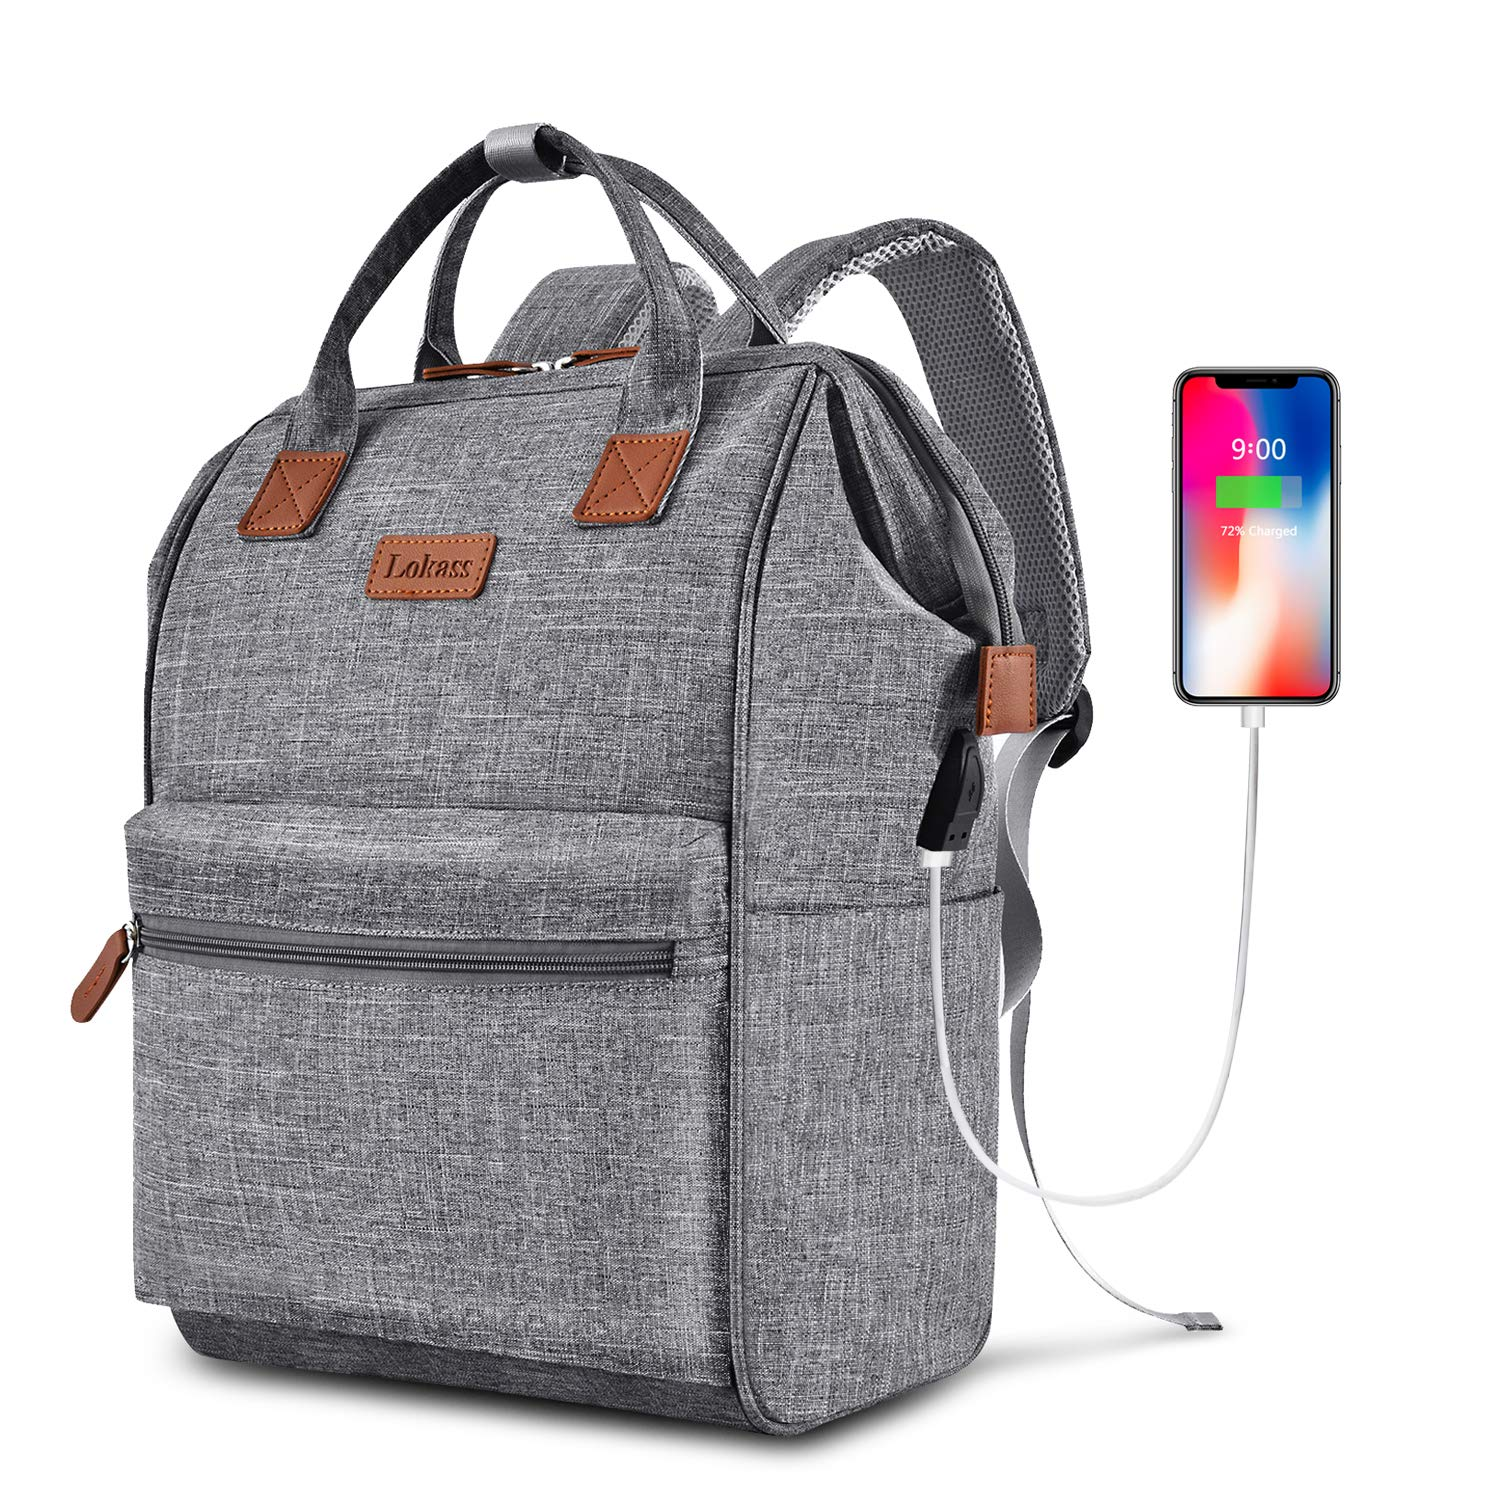 BRINCH Laptop Backpack 15.6 Inch Wide Open Computer Backpack Laptop Bag College Rucksack Water Resistant Business Travel Backpack Multipurpose Casual Daypack with USB Charging Port for Women Men,Gray by BRINCH